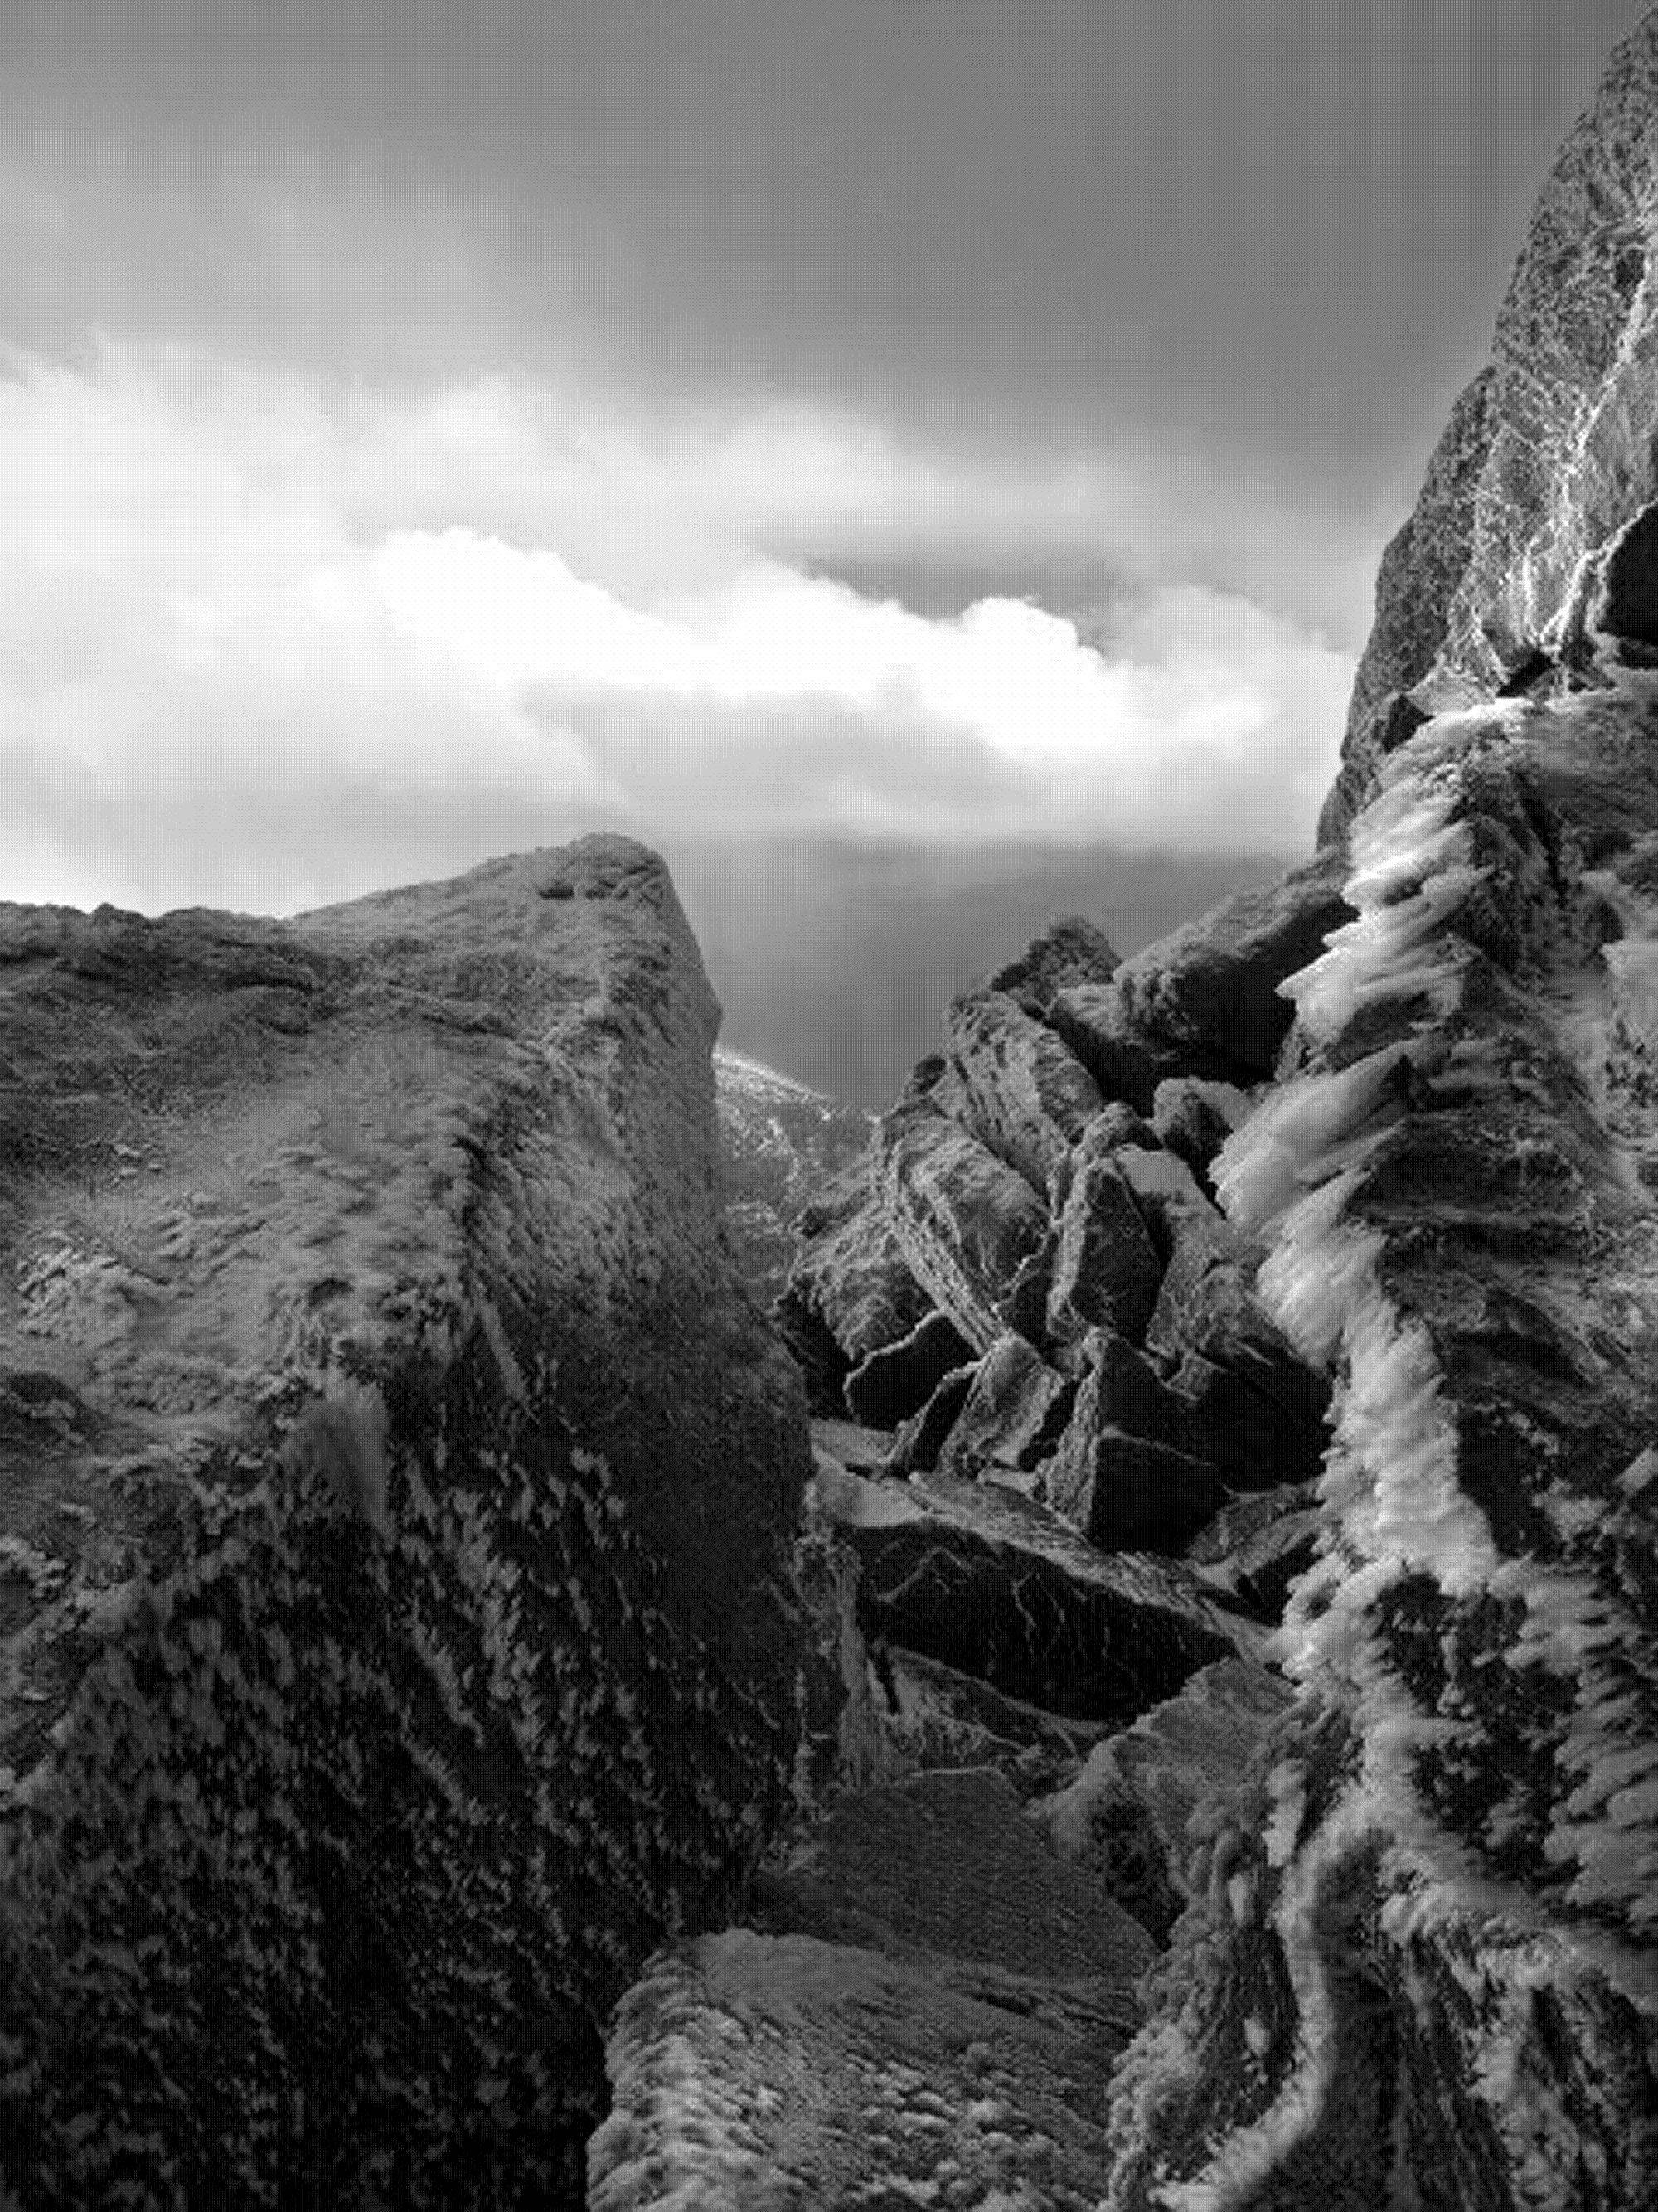 This photo was taken on Longs Peak in the Rocky Mountain National Park on a recent climbing trip.